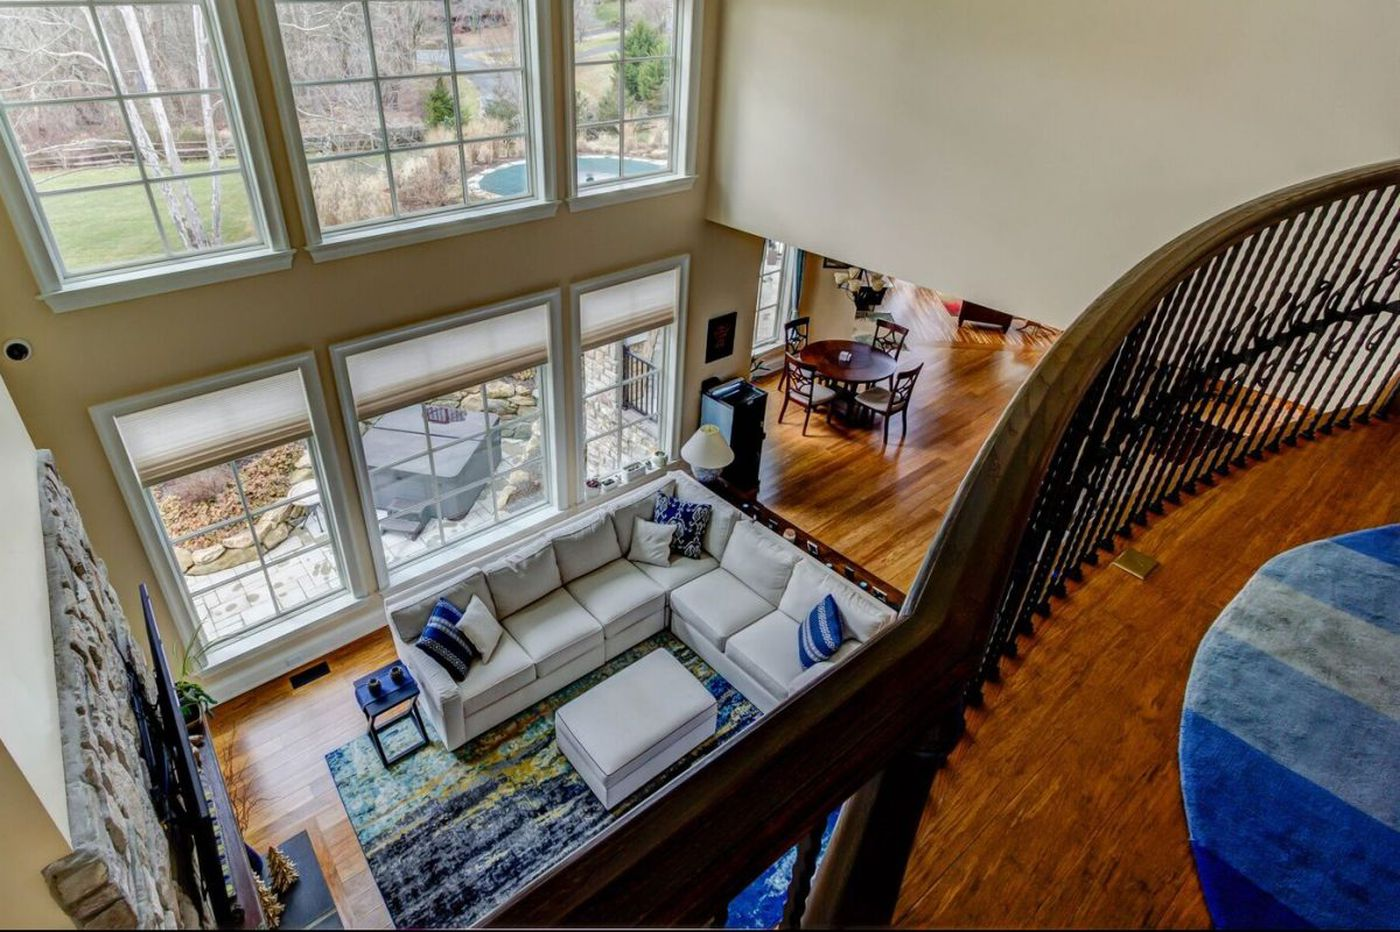 On the Market: 5-bedroom Delaware dream home for $1.9M